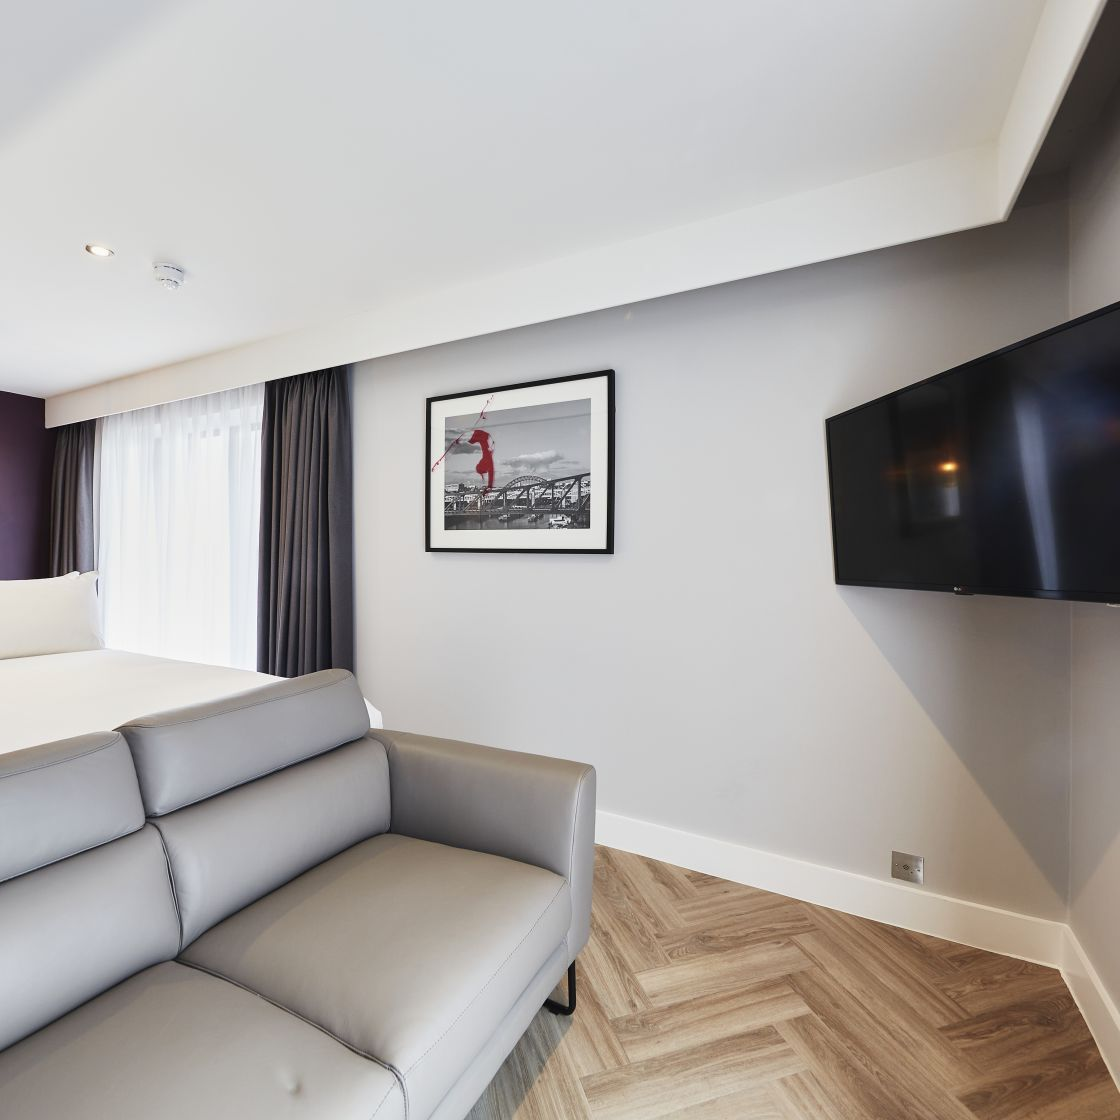 Neo Studio Student Apartment in Newcastle. King Size Bed, Sofa and TV. IconInc @ Roomzzz